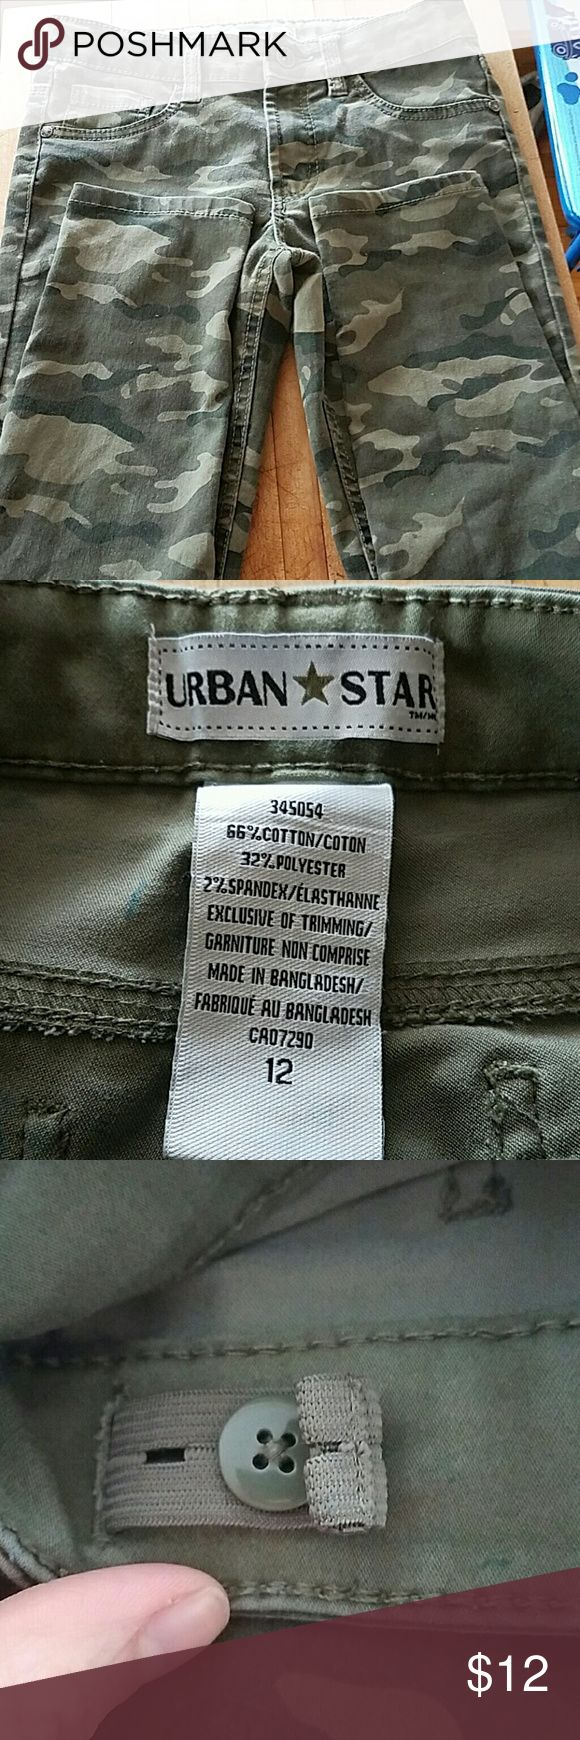 Camouflage Pants Girls Camouflage Pants, Urban Star, a little faded from washing but still in great shape. They are very soft and have an adjustable waist. Urban Star Bottoms Casual